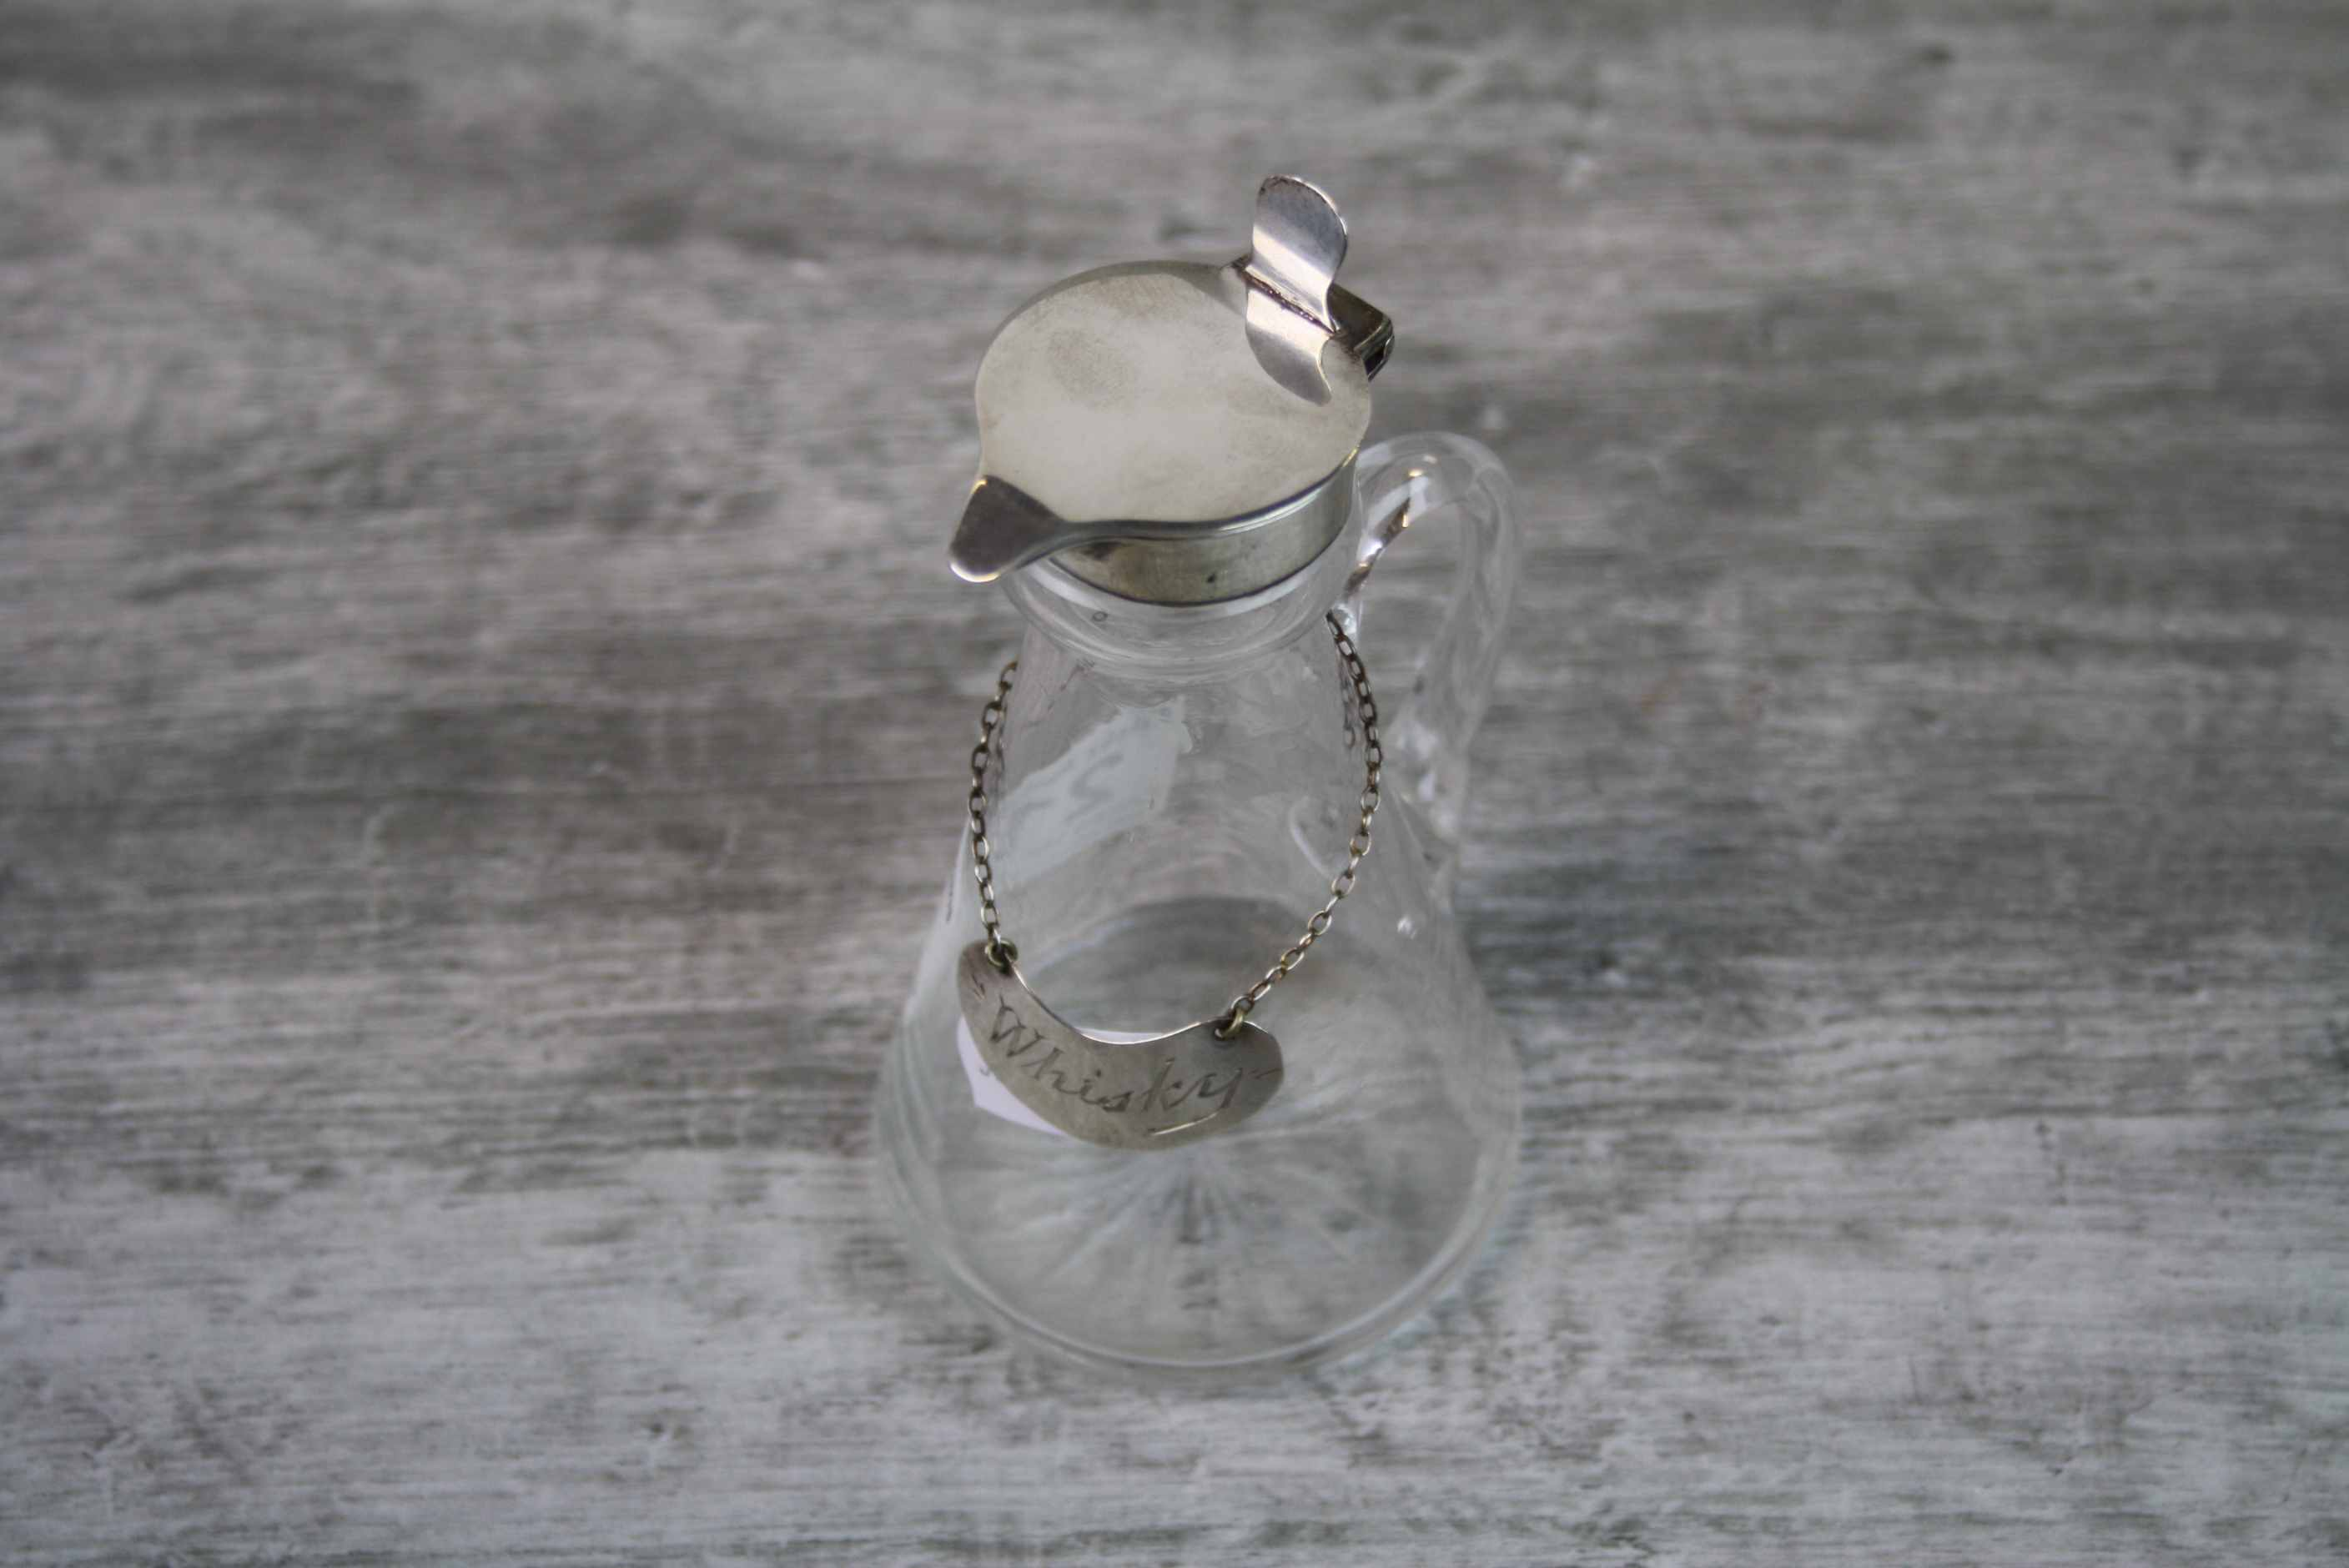 Edwardian silver topped whisky noggin, glass body of plain form with cut glass star design to